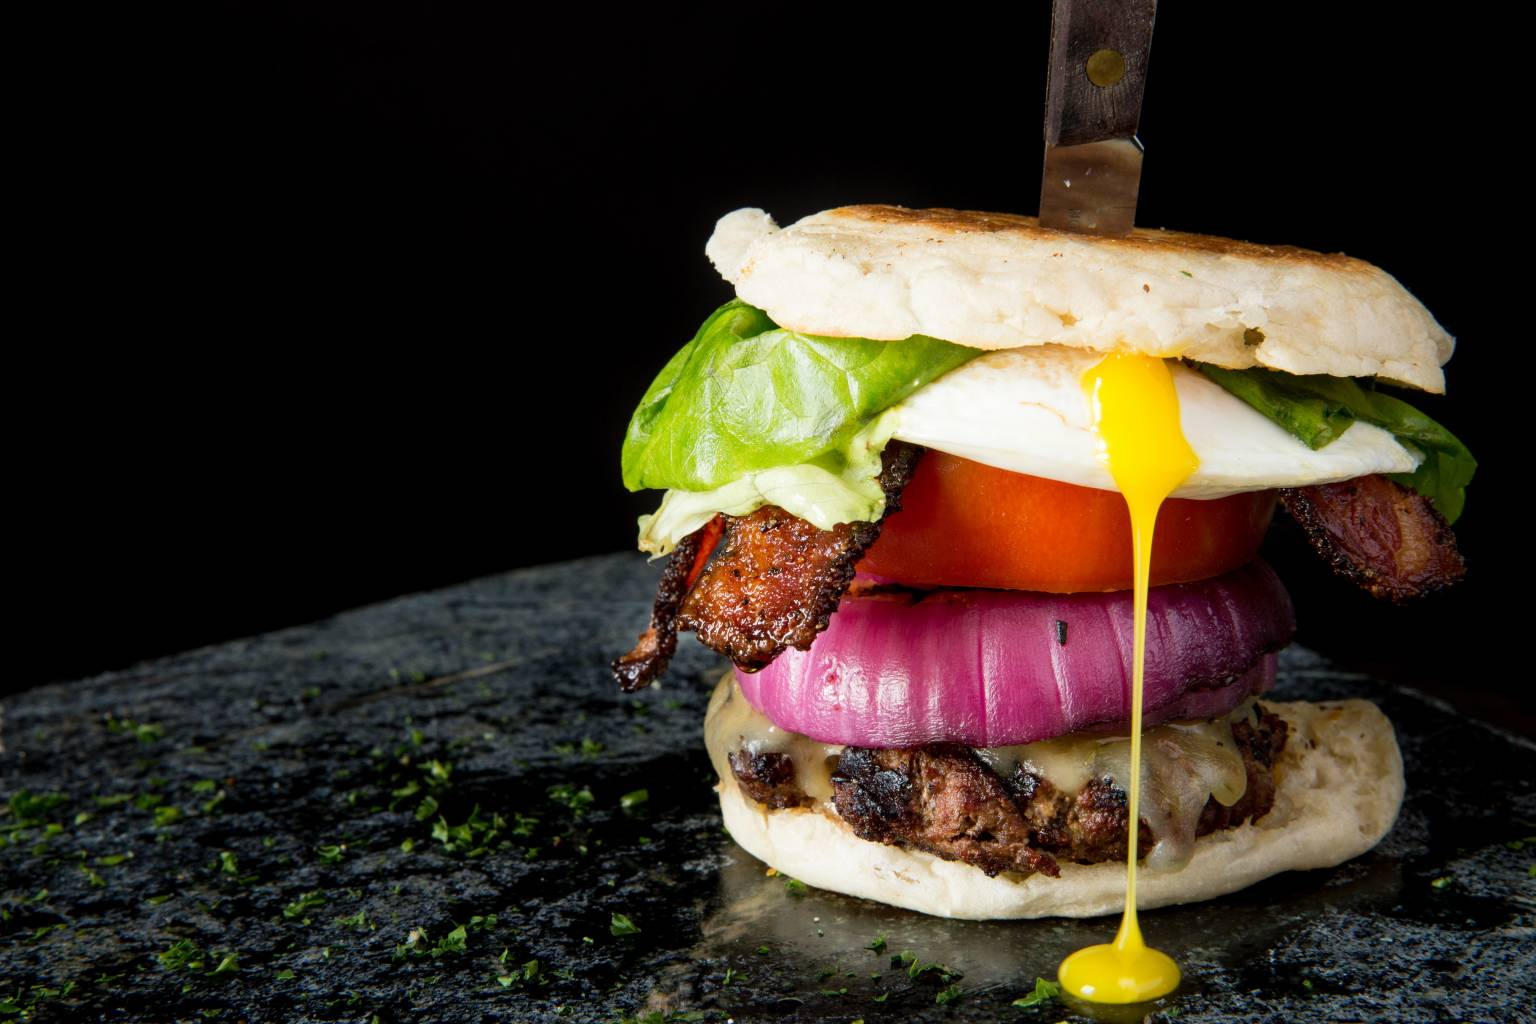 Hangover Burger with fried egg, bacon, cheese, lettuce, tomato & onion on an English muffin.